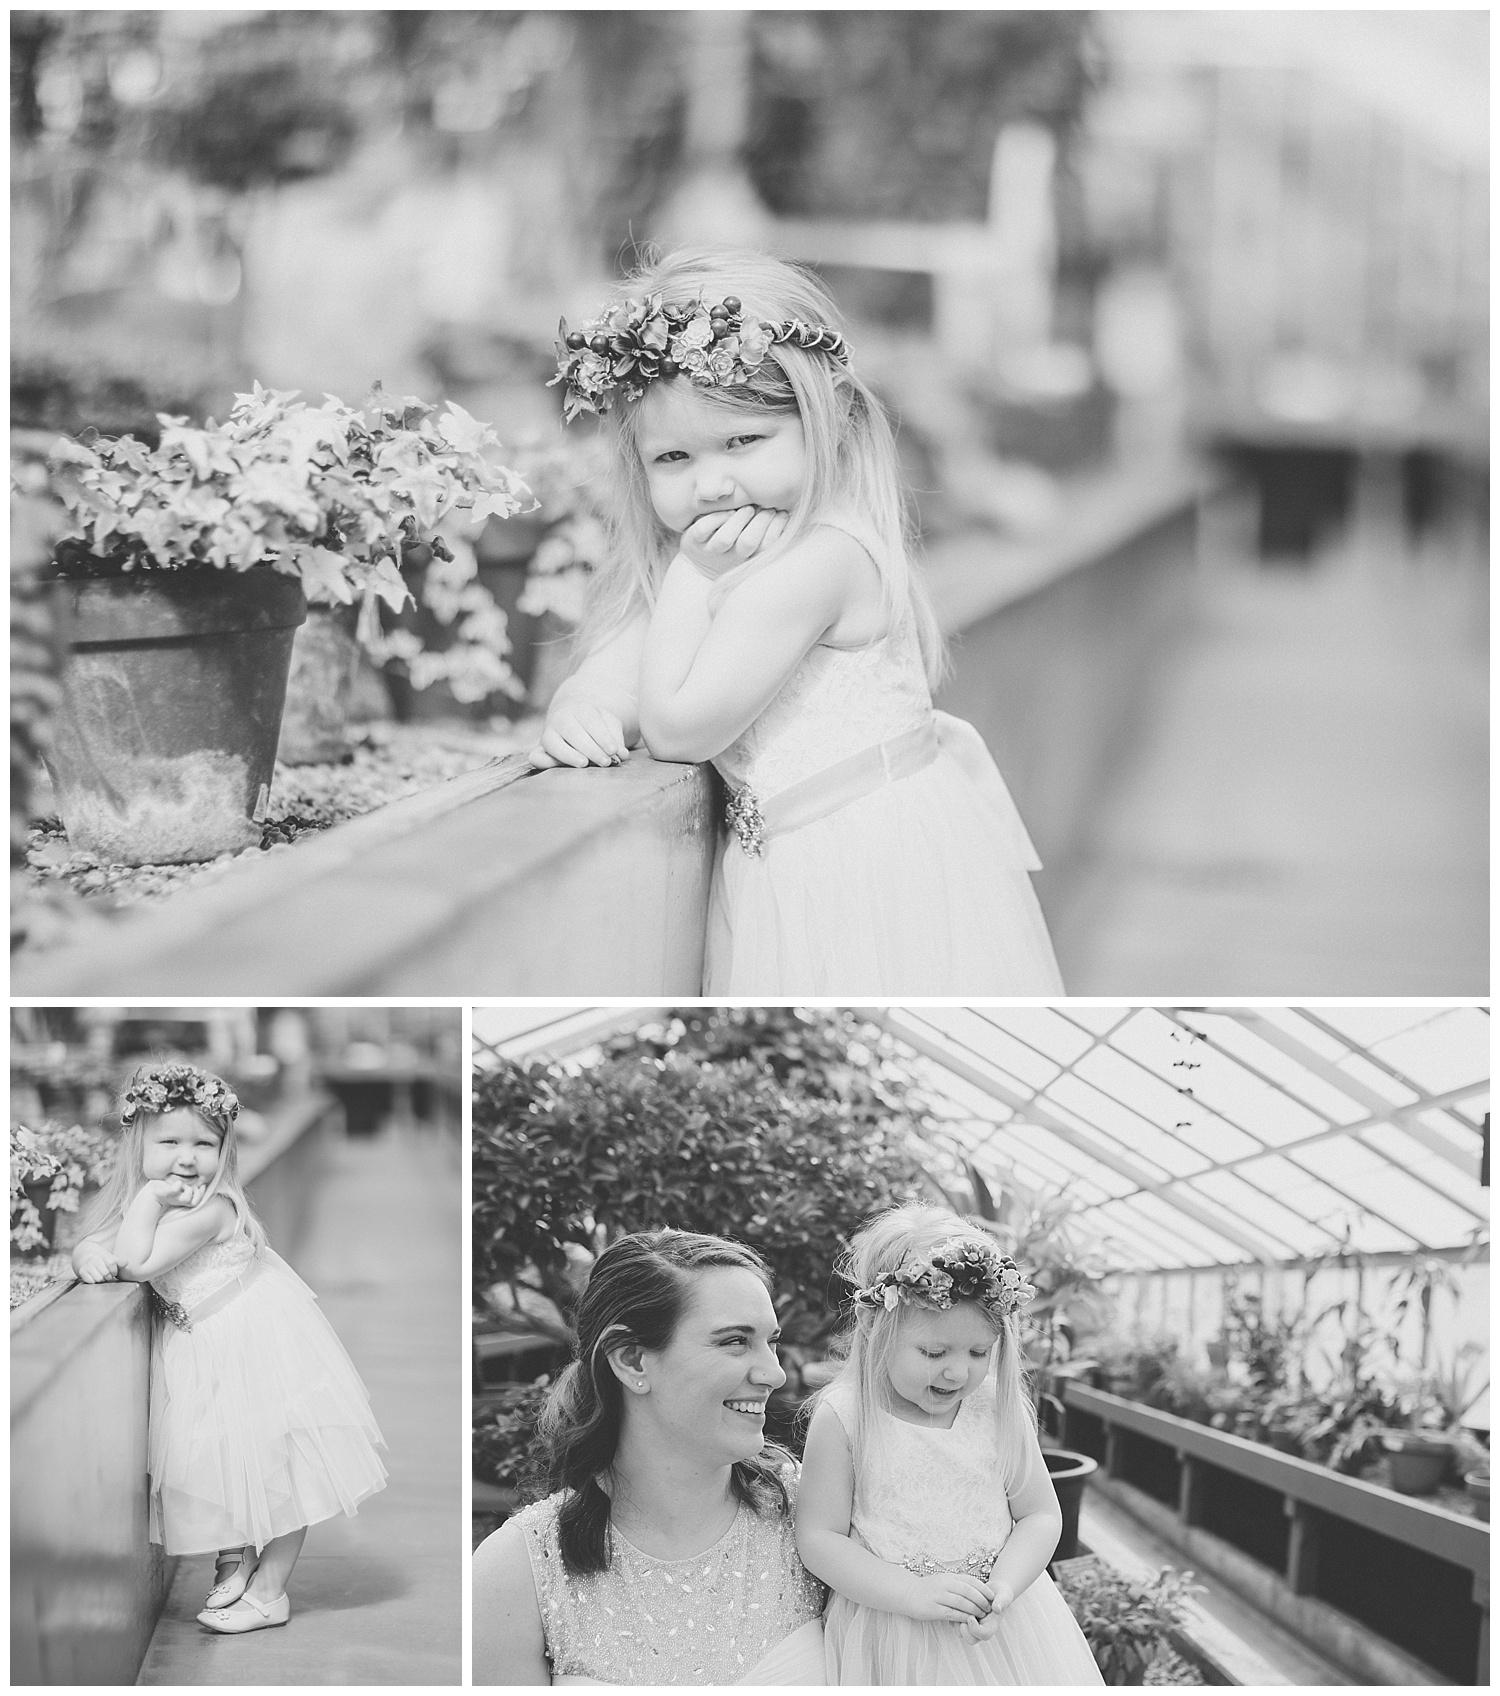 Buffalo Botanical gardens wedding - Buffalo NY Lass and Beau 45.jpg